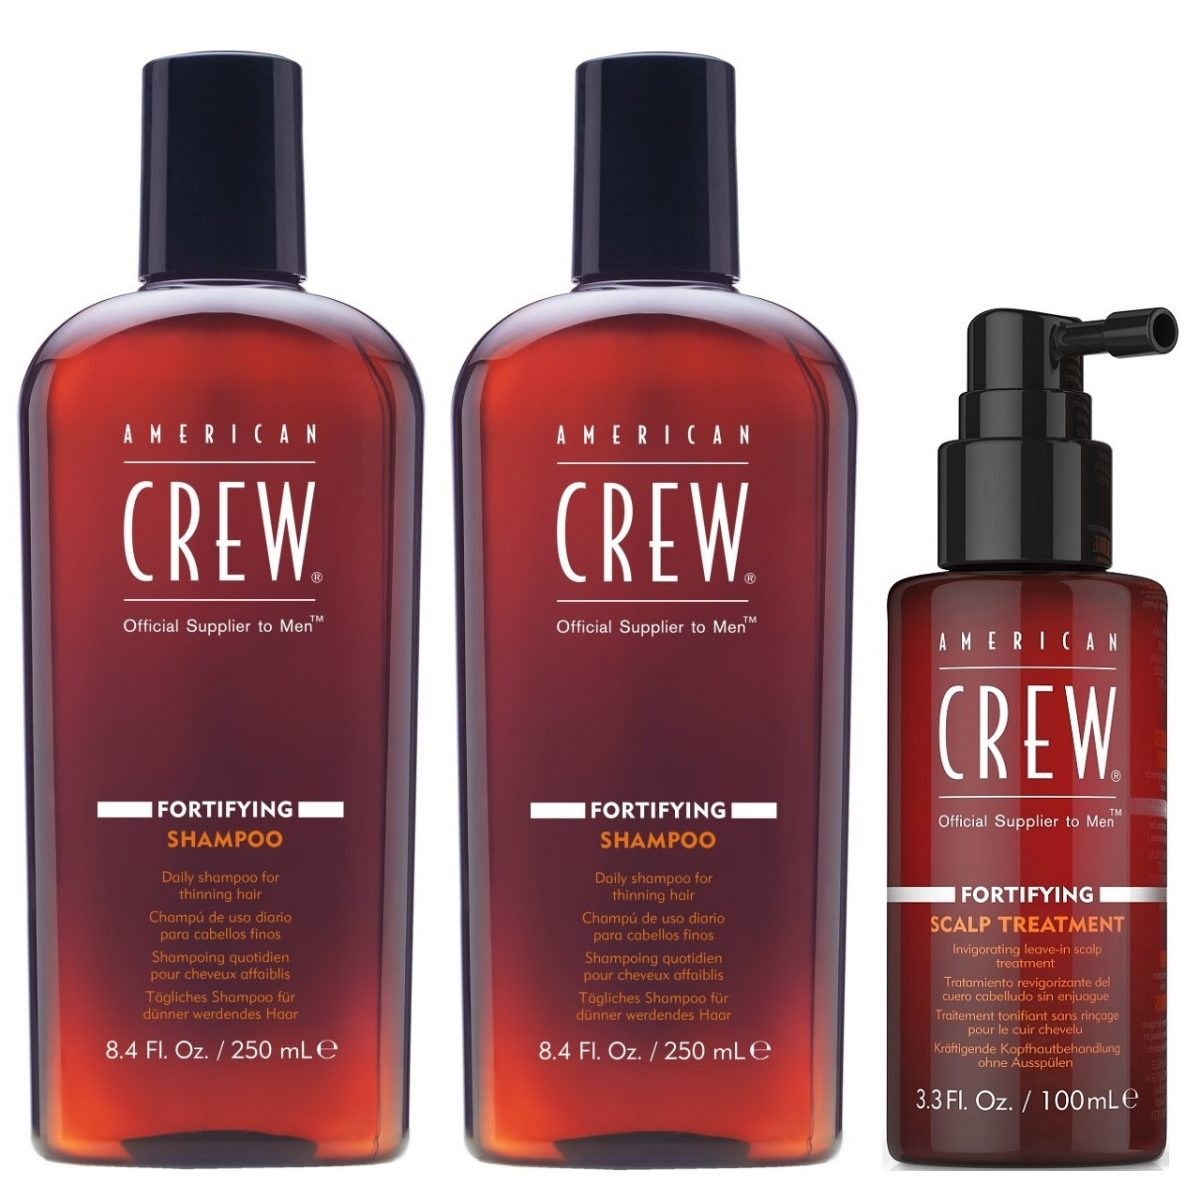 15_Emphase_american-crew-fortifying-duo_shampoo-250ml_Fortifying_Scalp_Treatment_100ml